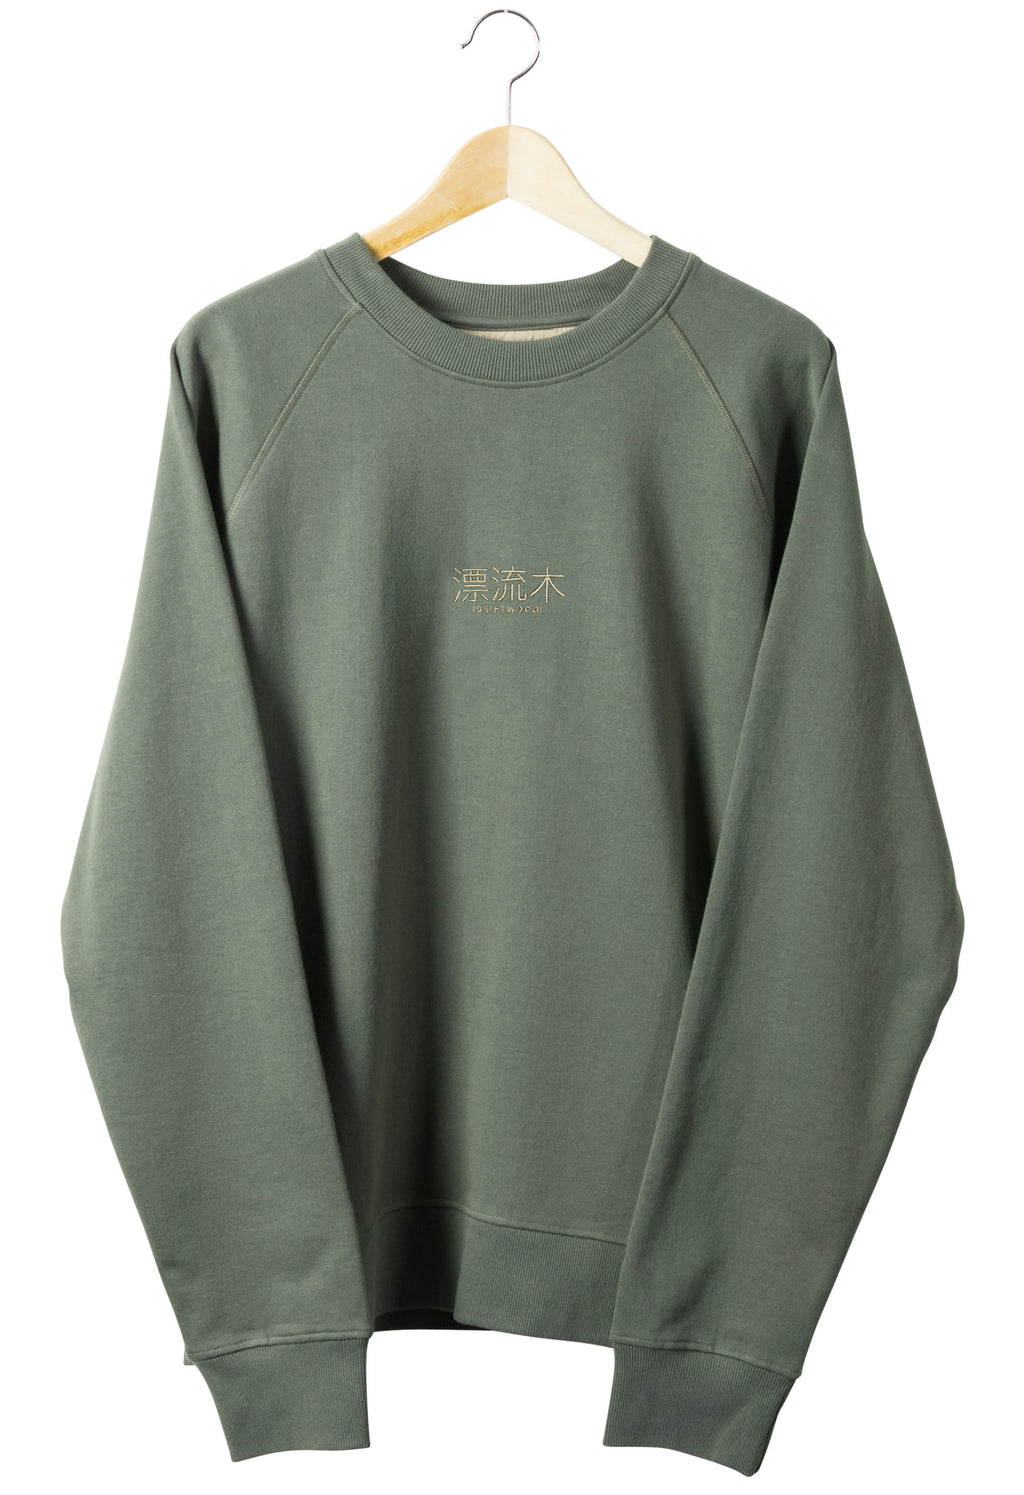 Sweat - organic cotton - Japanese Driftwood embroidery - Army Green